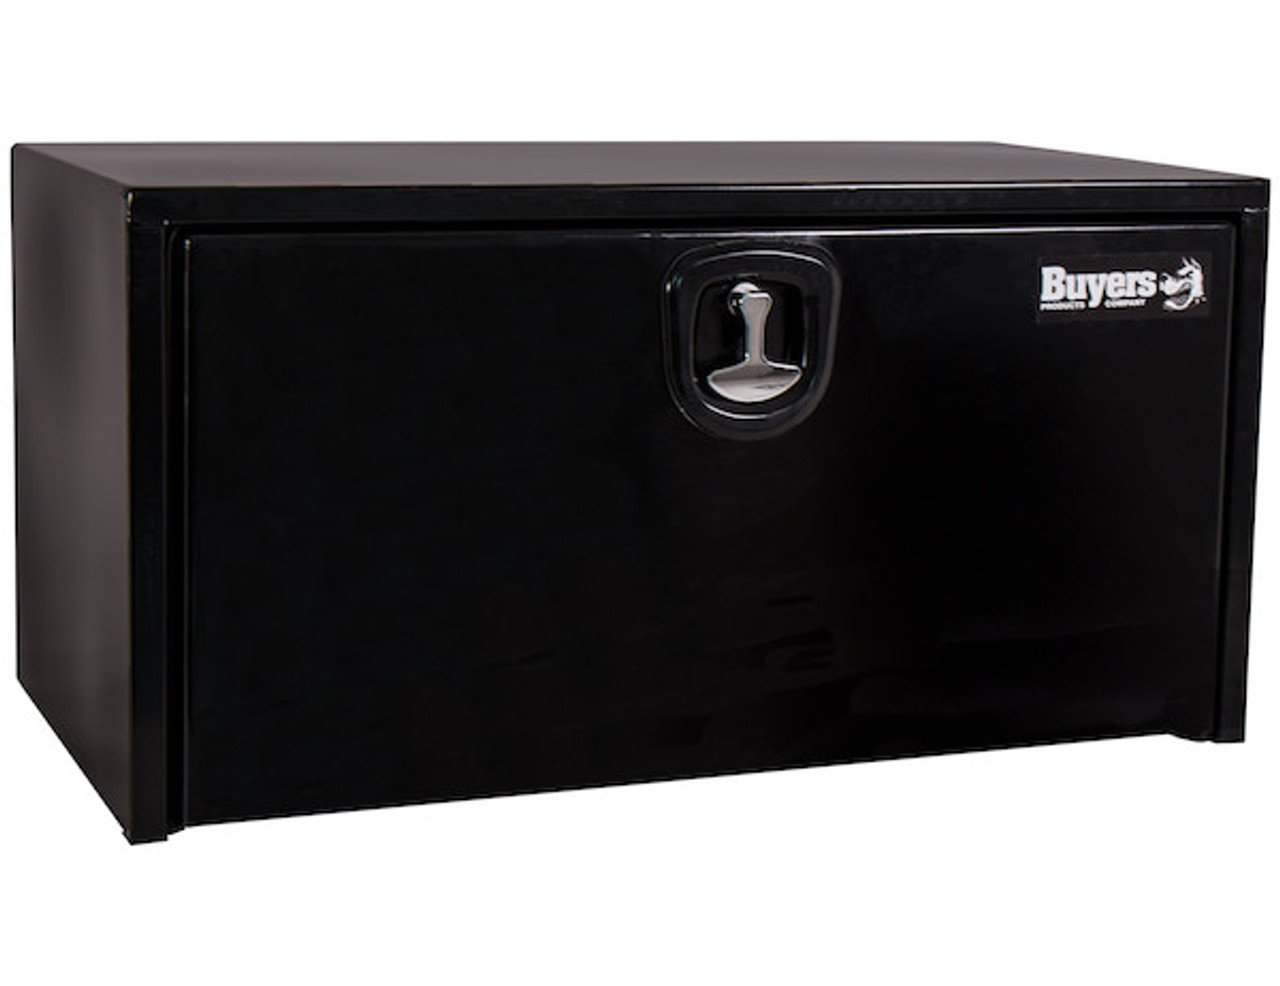 """1732310 BUYERS PRODUCTS BLACK STEEL UNDERBODY TRUCK TOOLBOX WITH 3-POINT LATCH 18""""Hx18""""Dx48""""W"""